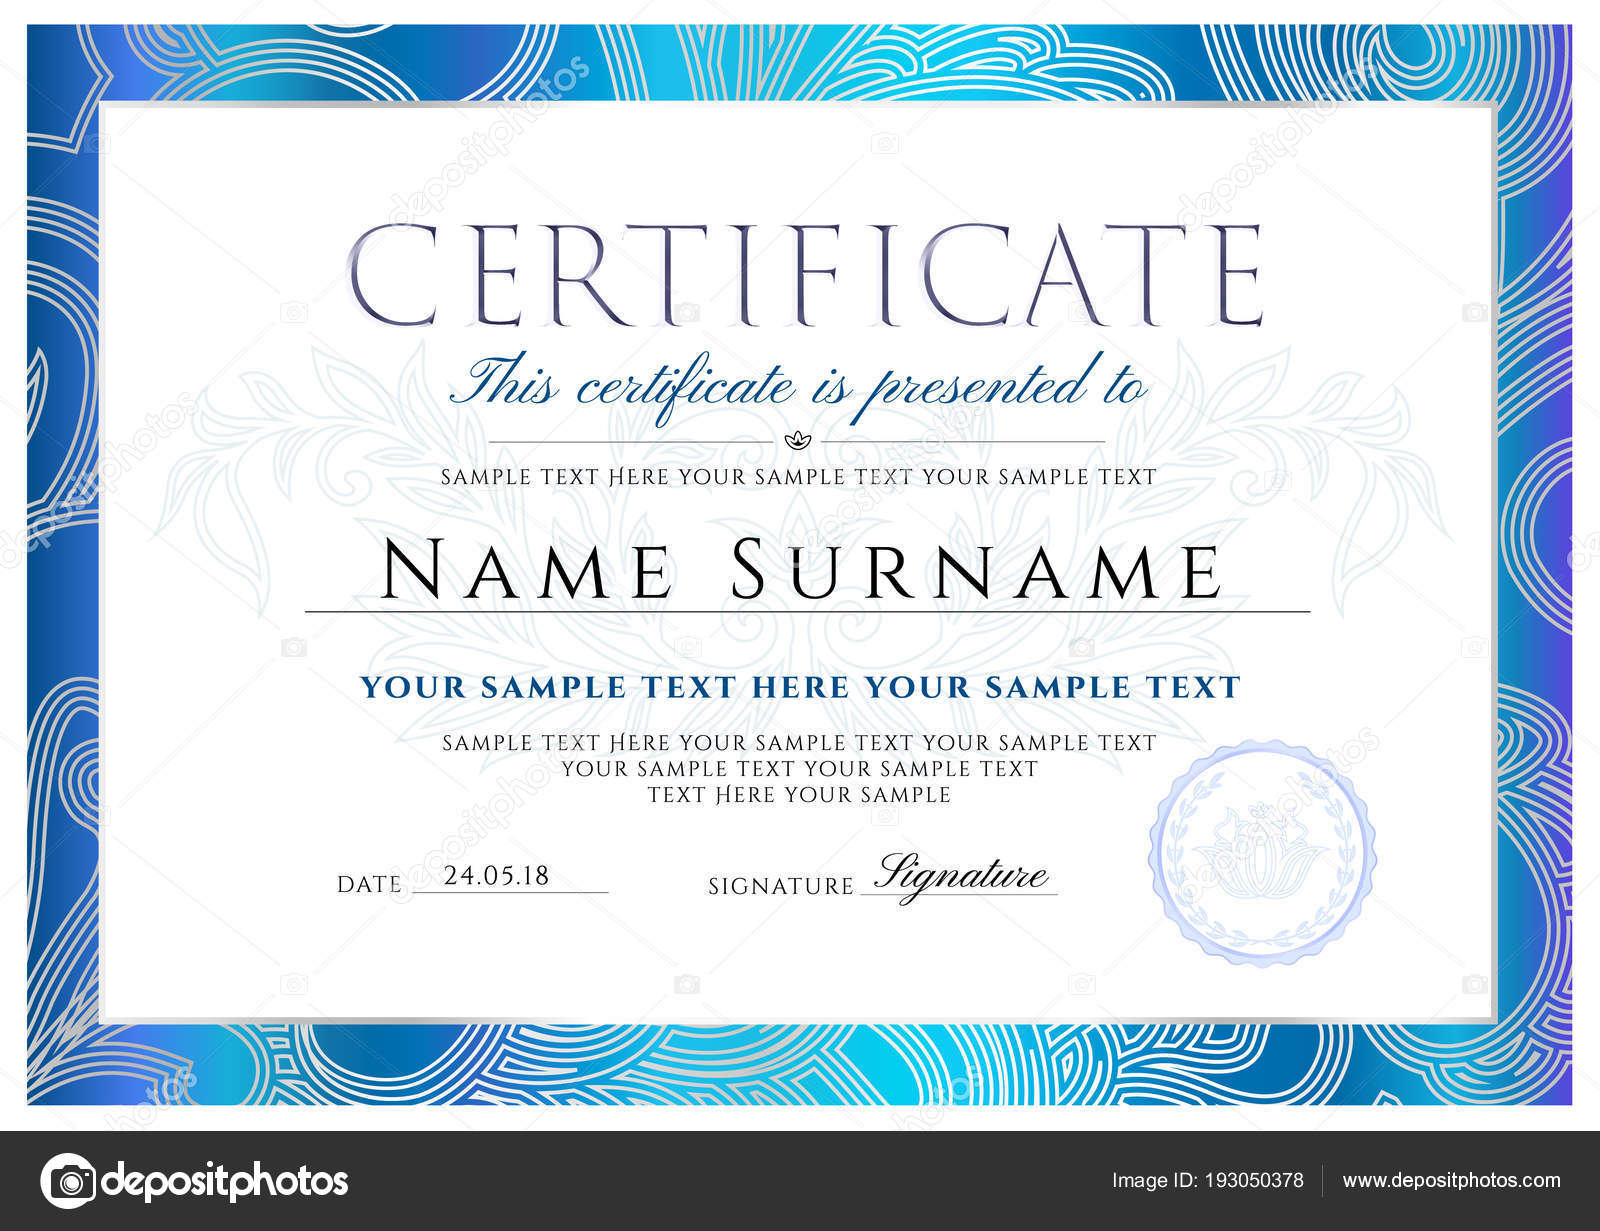 high school diploma certificate fancy design templates - certificate diploma completion design template white